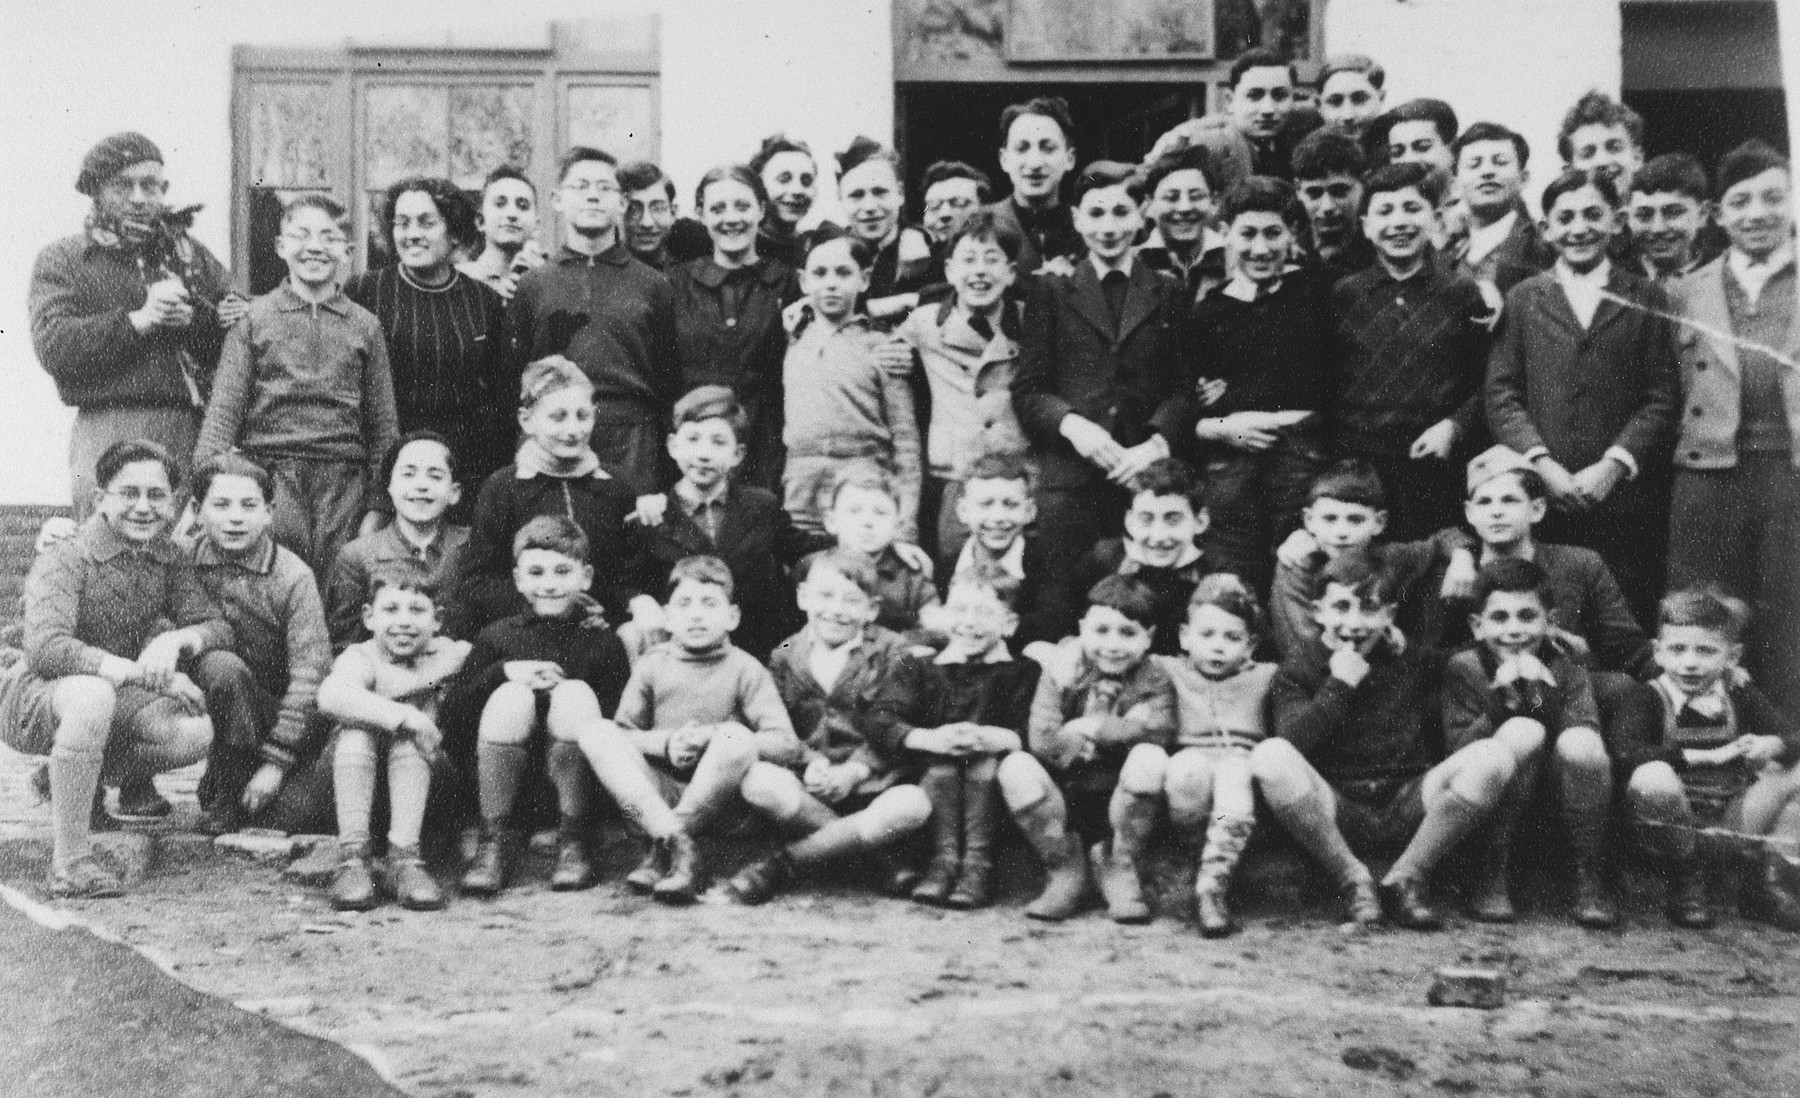 "Group portrait of the children who came to Belgium from Germany and Austria on a Kindertransport outside the Speyer children's home at 128 rue Victor Rauter in Anderlecht.  Front row (left to right): Guy Haas, Georges Herz, Willy Wolpert (?), Alfred Eschwege. Martin Findling. Manfred Tidor, Henri Vos, Gerhard Eckmann, unknown, and Fred Findling.  Second row: Gerard Kwaczkowski. Manfred Vos, Egon Berlin, Rudi Oehlbaum, unknown, Bernard Eisler, unknown, Joseph Dortort, Max Krolik, and Klaus Sostheim.  Back row: Mr. Becker, Willy Grossmann, female counselor, Gerd Obersitzker, Leo Grossmann, Emile Dortort, Tante Lucienne DeWaay, unknown, Peter Salz, Edgar Chaim, Manfred Kamlet, unknown, Bertrand Elkan, Hans Garfunkel. Lucien Wolfgang. unknown, Henri Brunel. Werner Rindsberg, Jacques Roth, Norbert Stueckler, Kurt ""Onze"" Klein, and Norbert Winter.  Far back are Charles Blumenfeld, and Eddie Nussbaum."